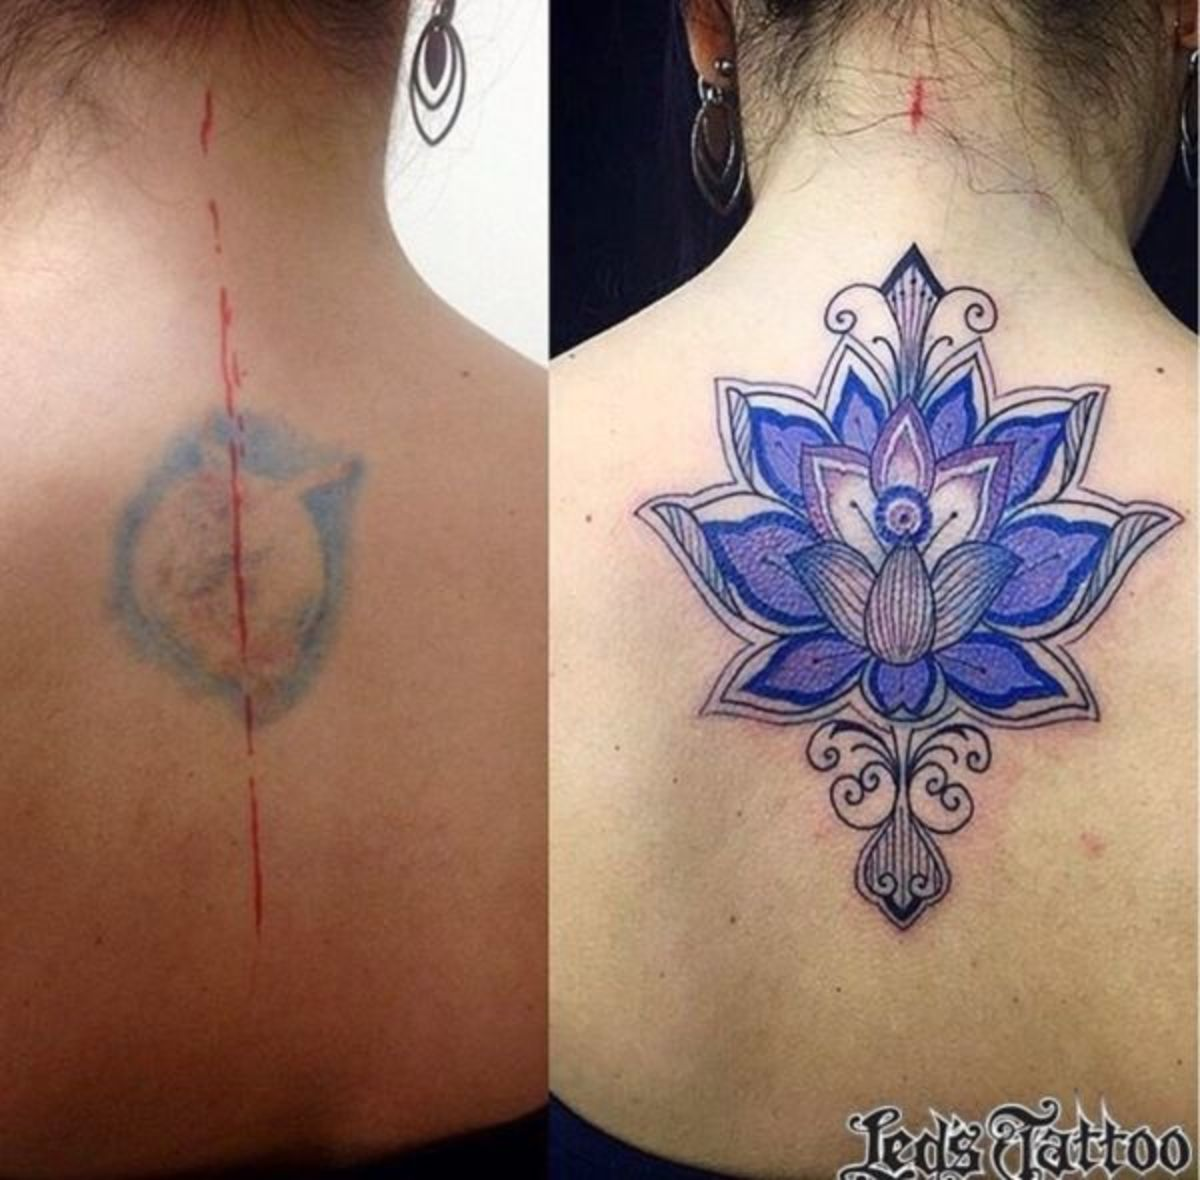 tattoo-cover-up-by-ledstattoo